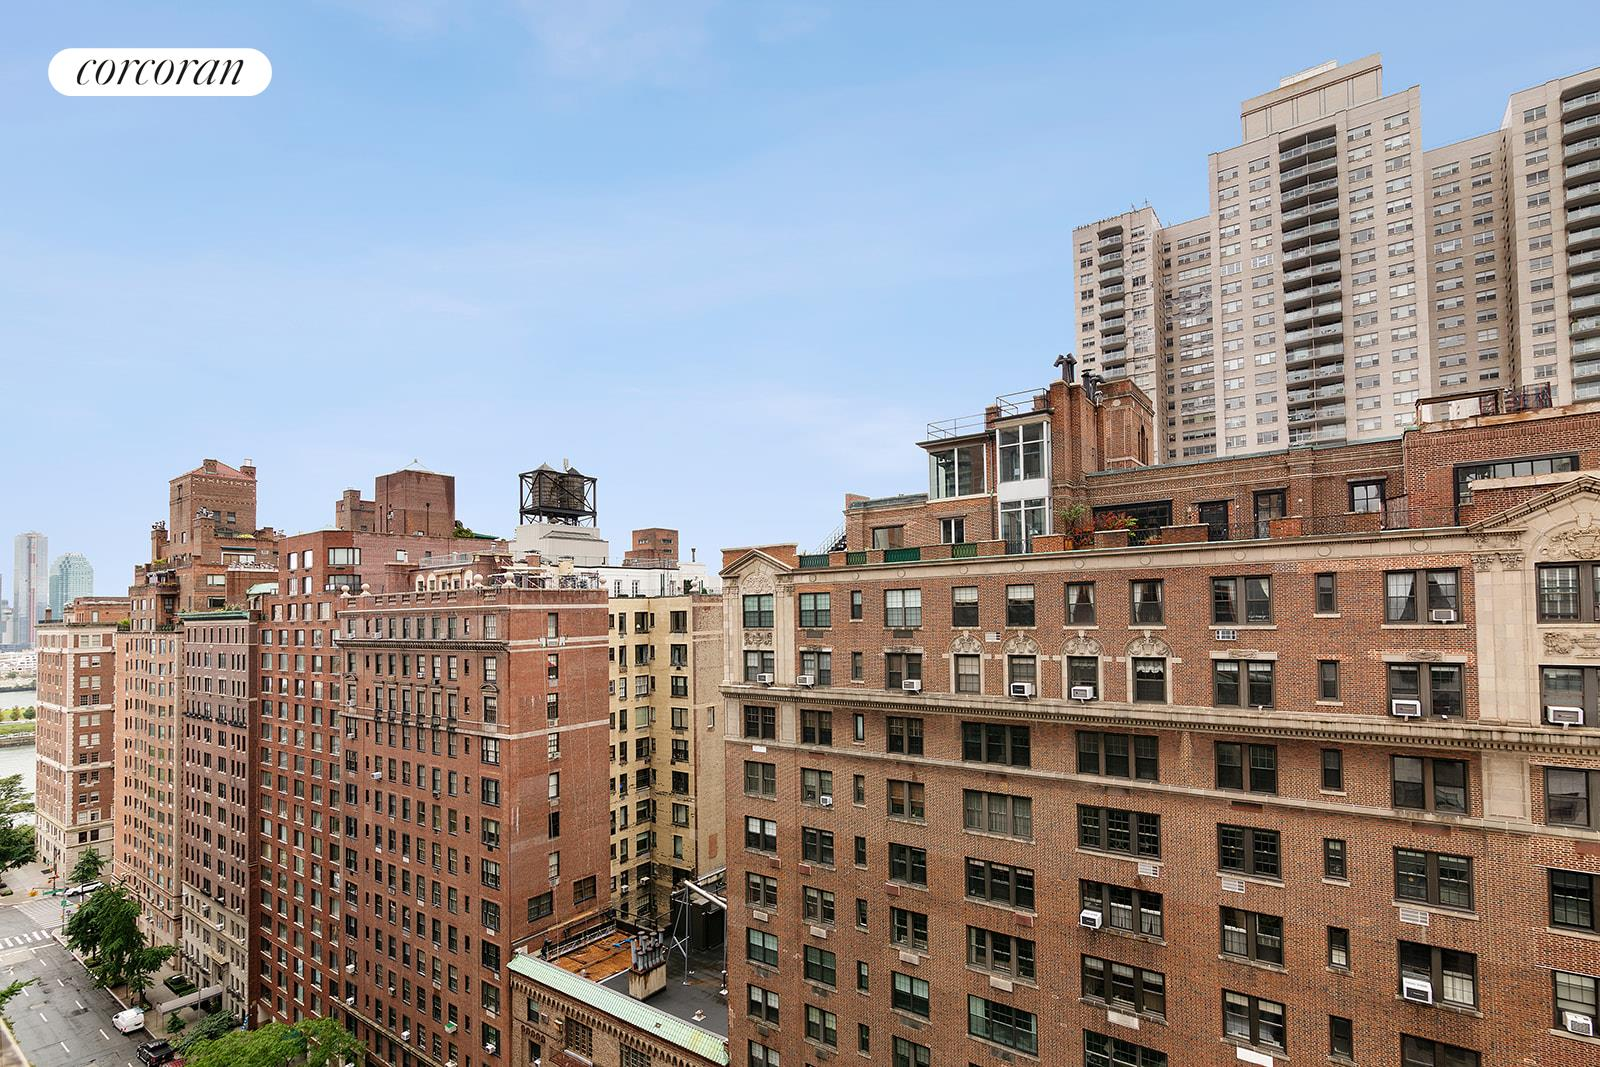 411 East 57th Street Sutton Place New York NY 10022